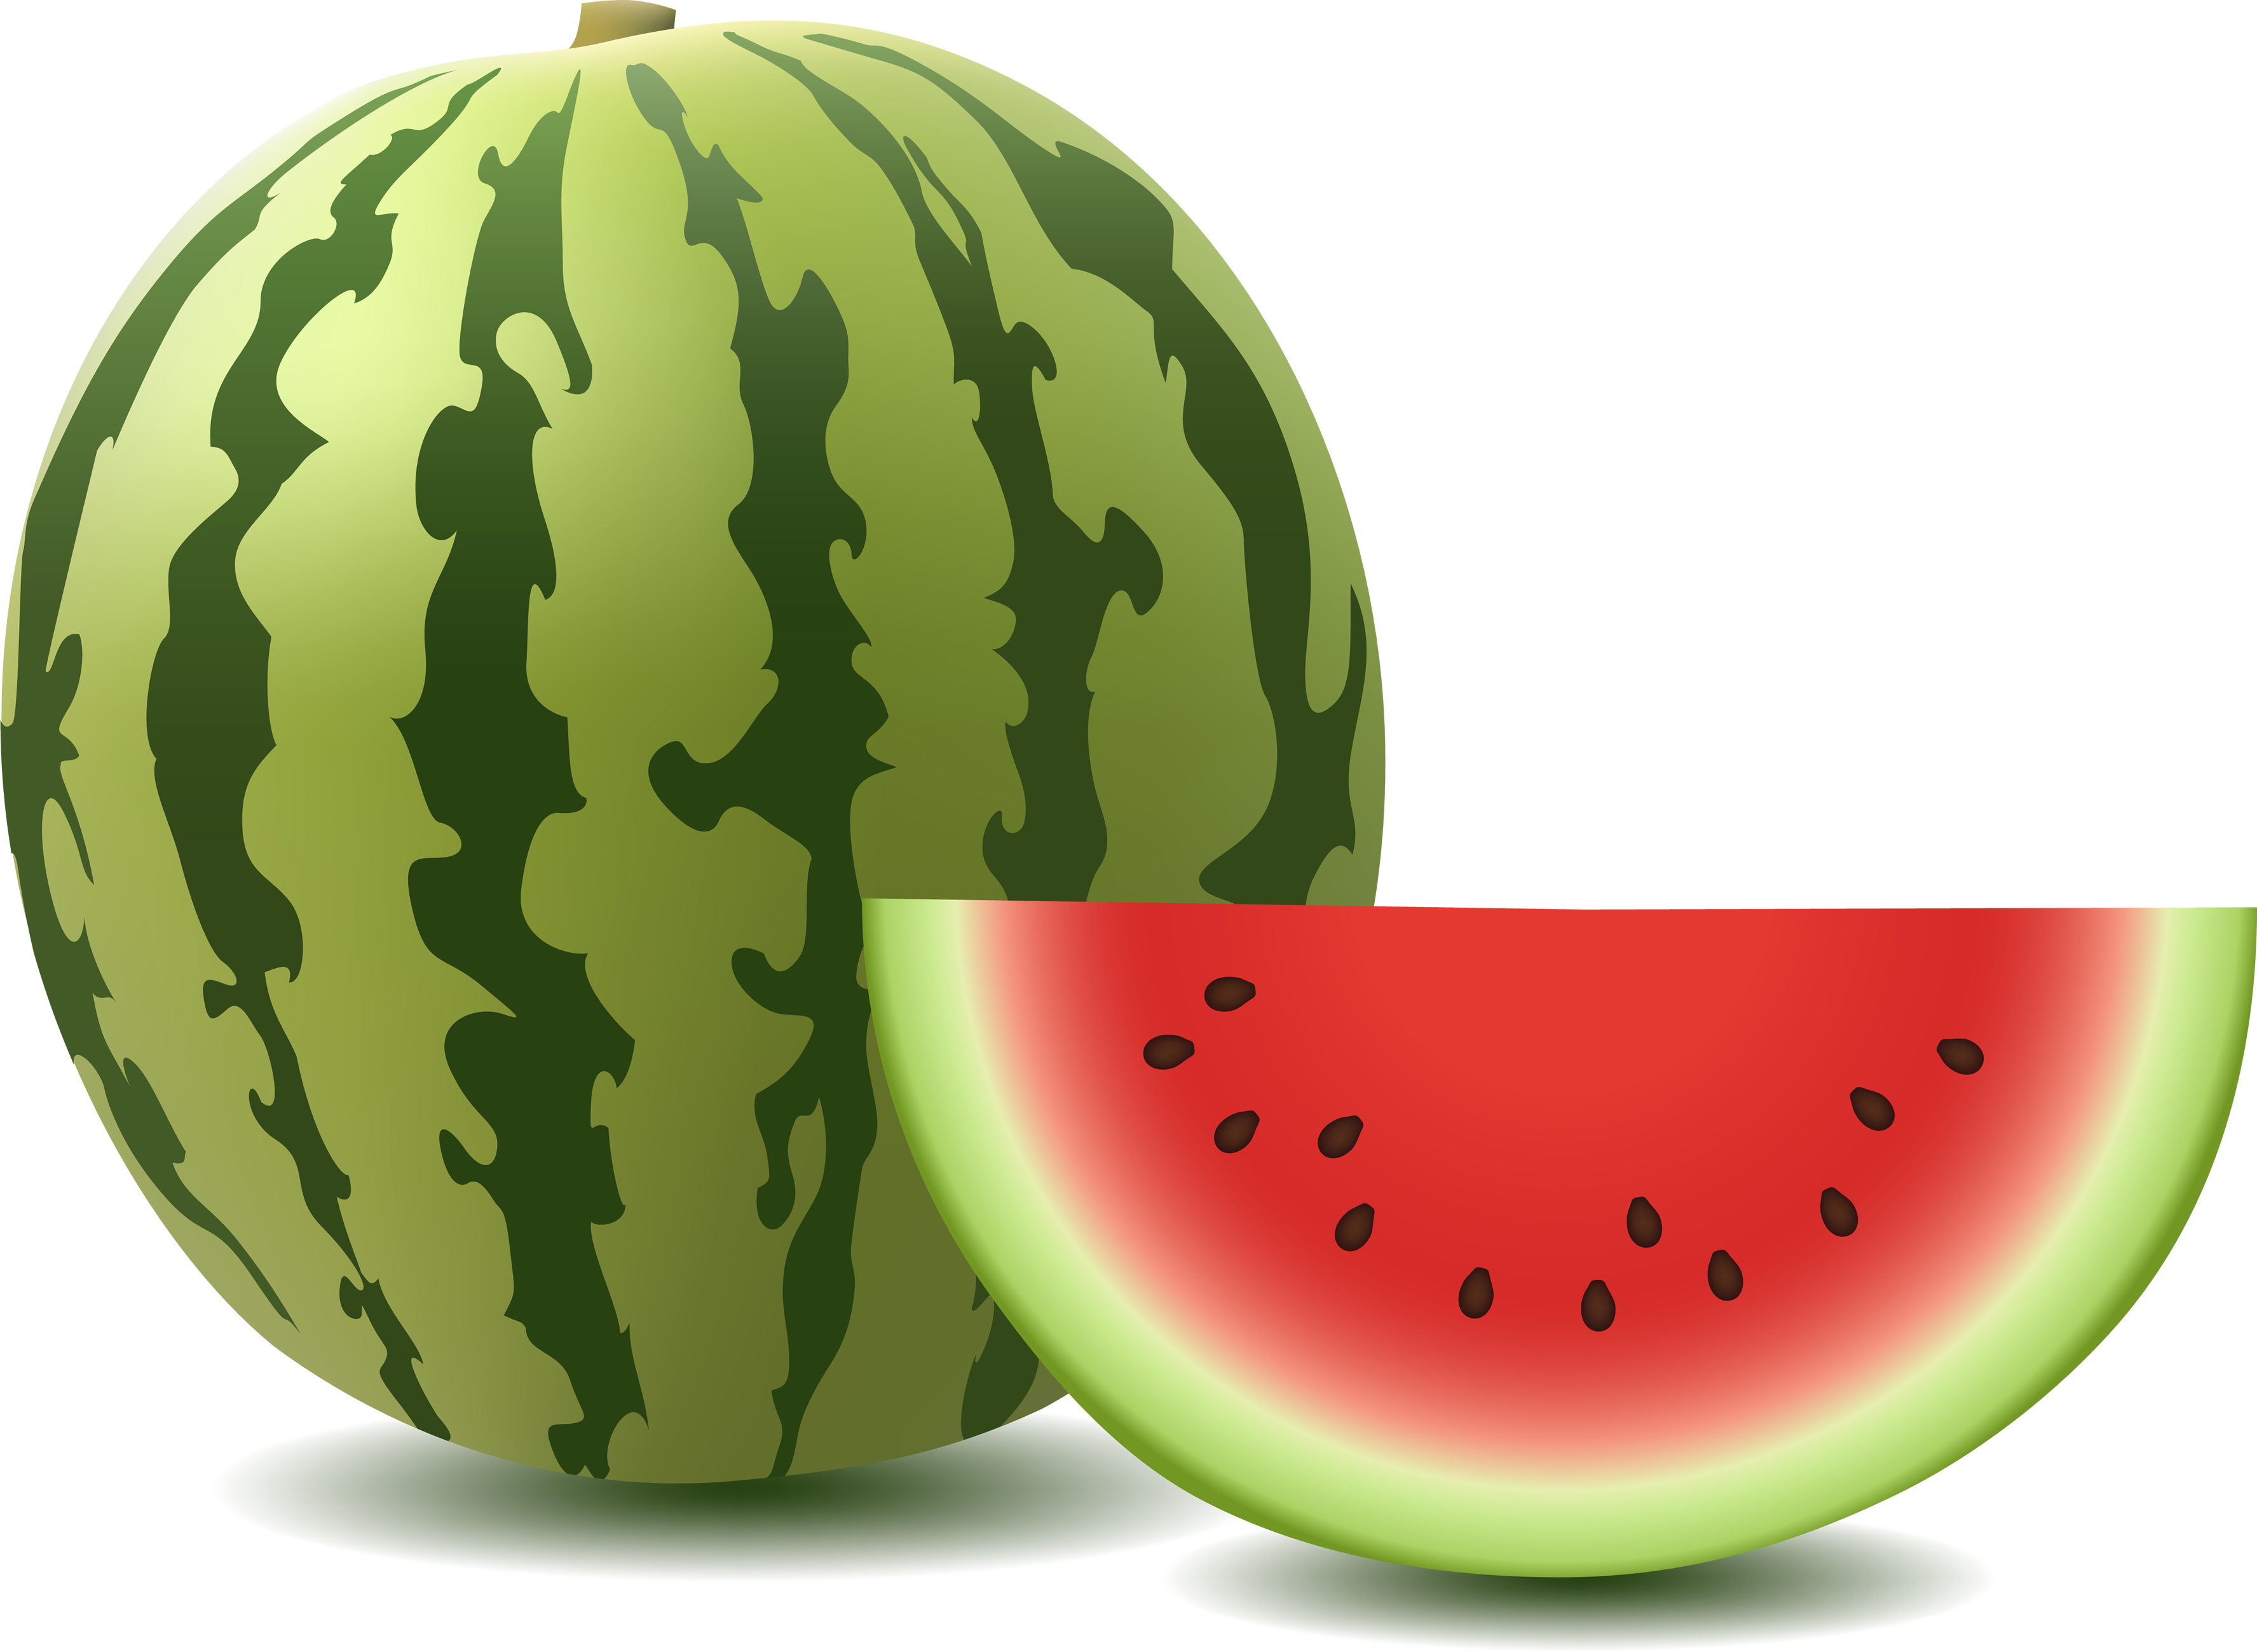 Watermelon High Quality Transparent